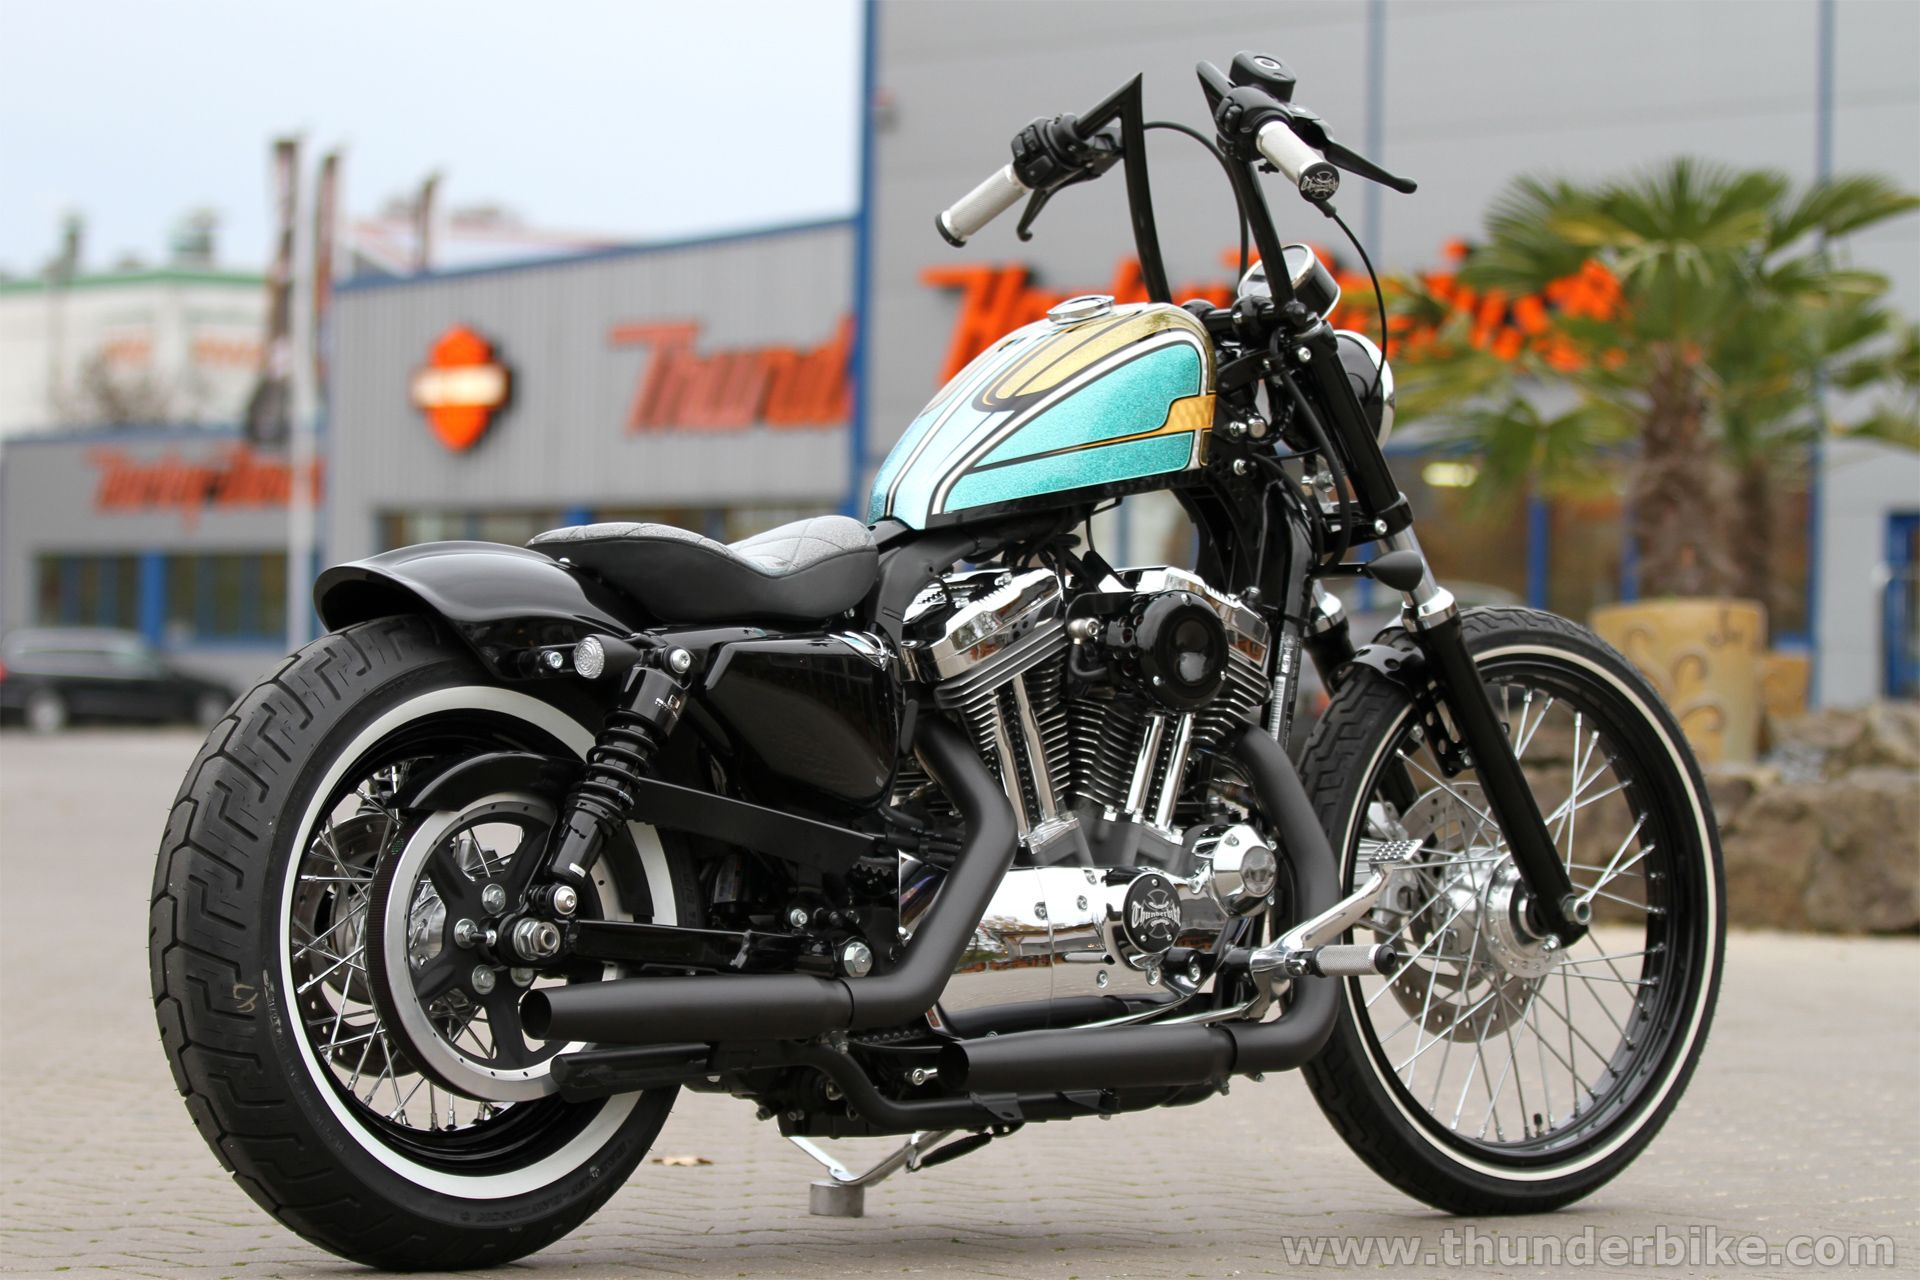 Harley Davidson Custom Sportster Parts And Accessories For: Harley-Davidson Sportster Gallery